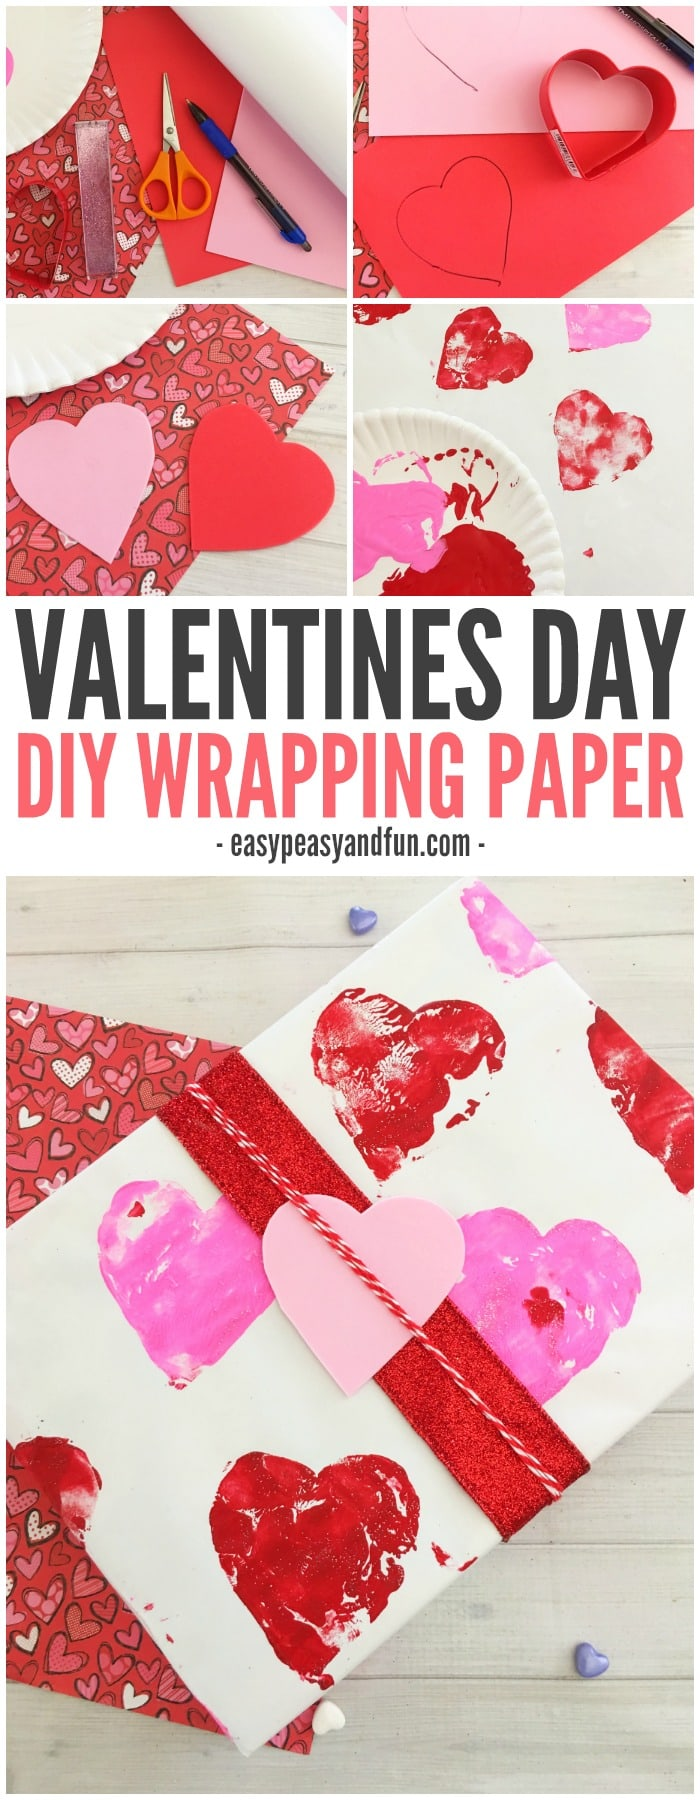 simple valentines day diy wrapping paper - Valentines Day Wrapping Paper